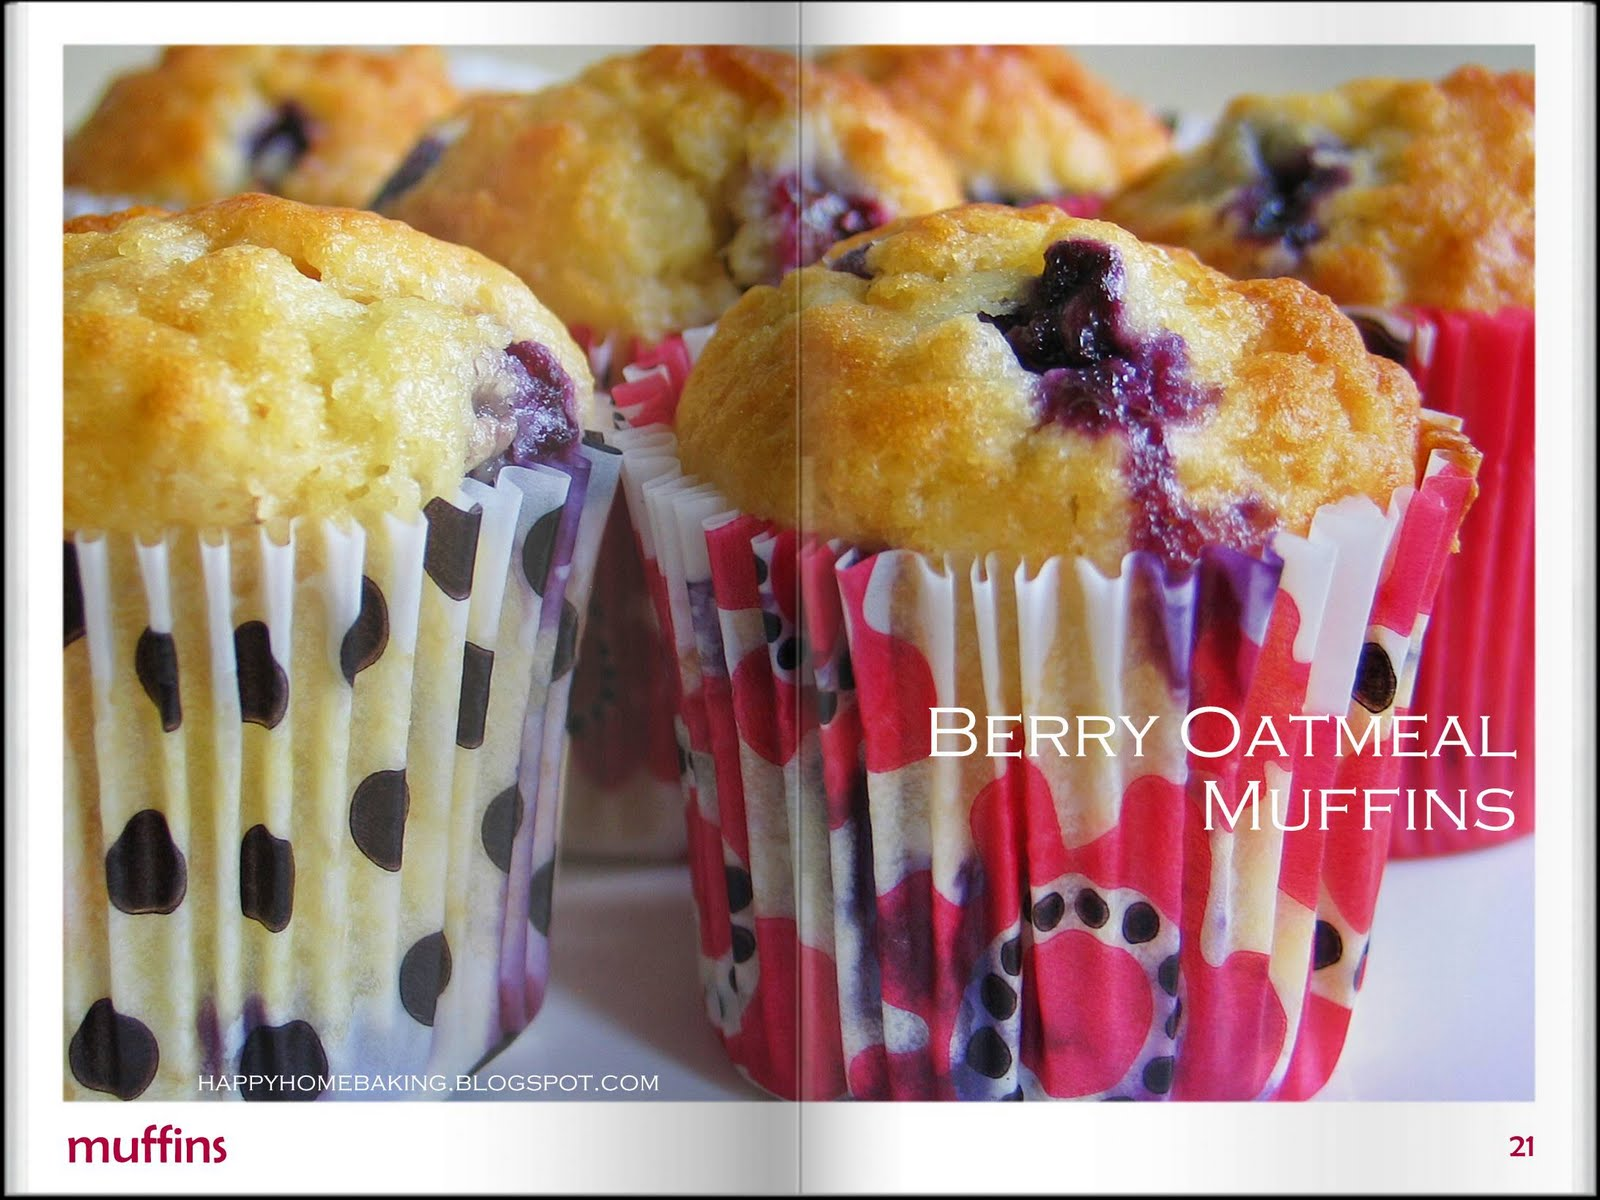 Help! Qn about muffins..?